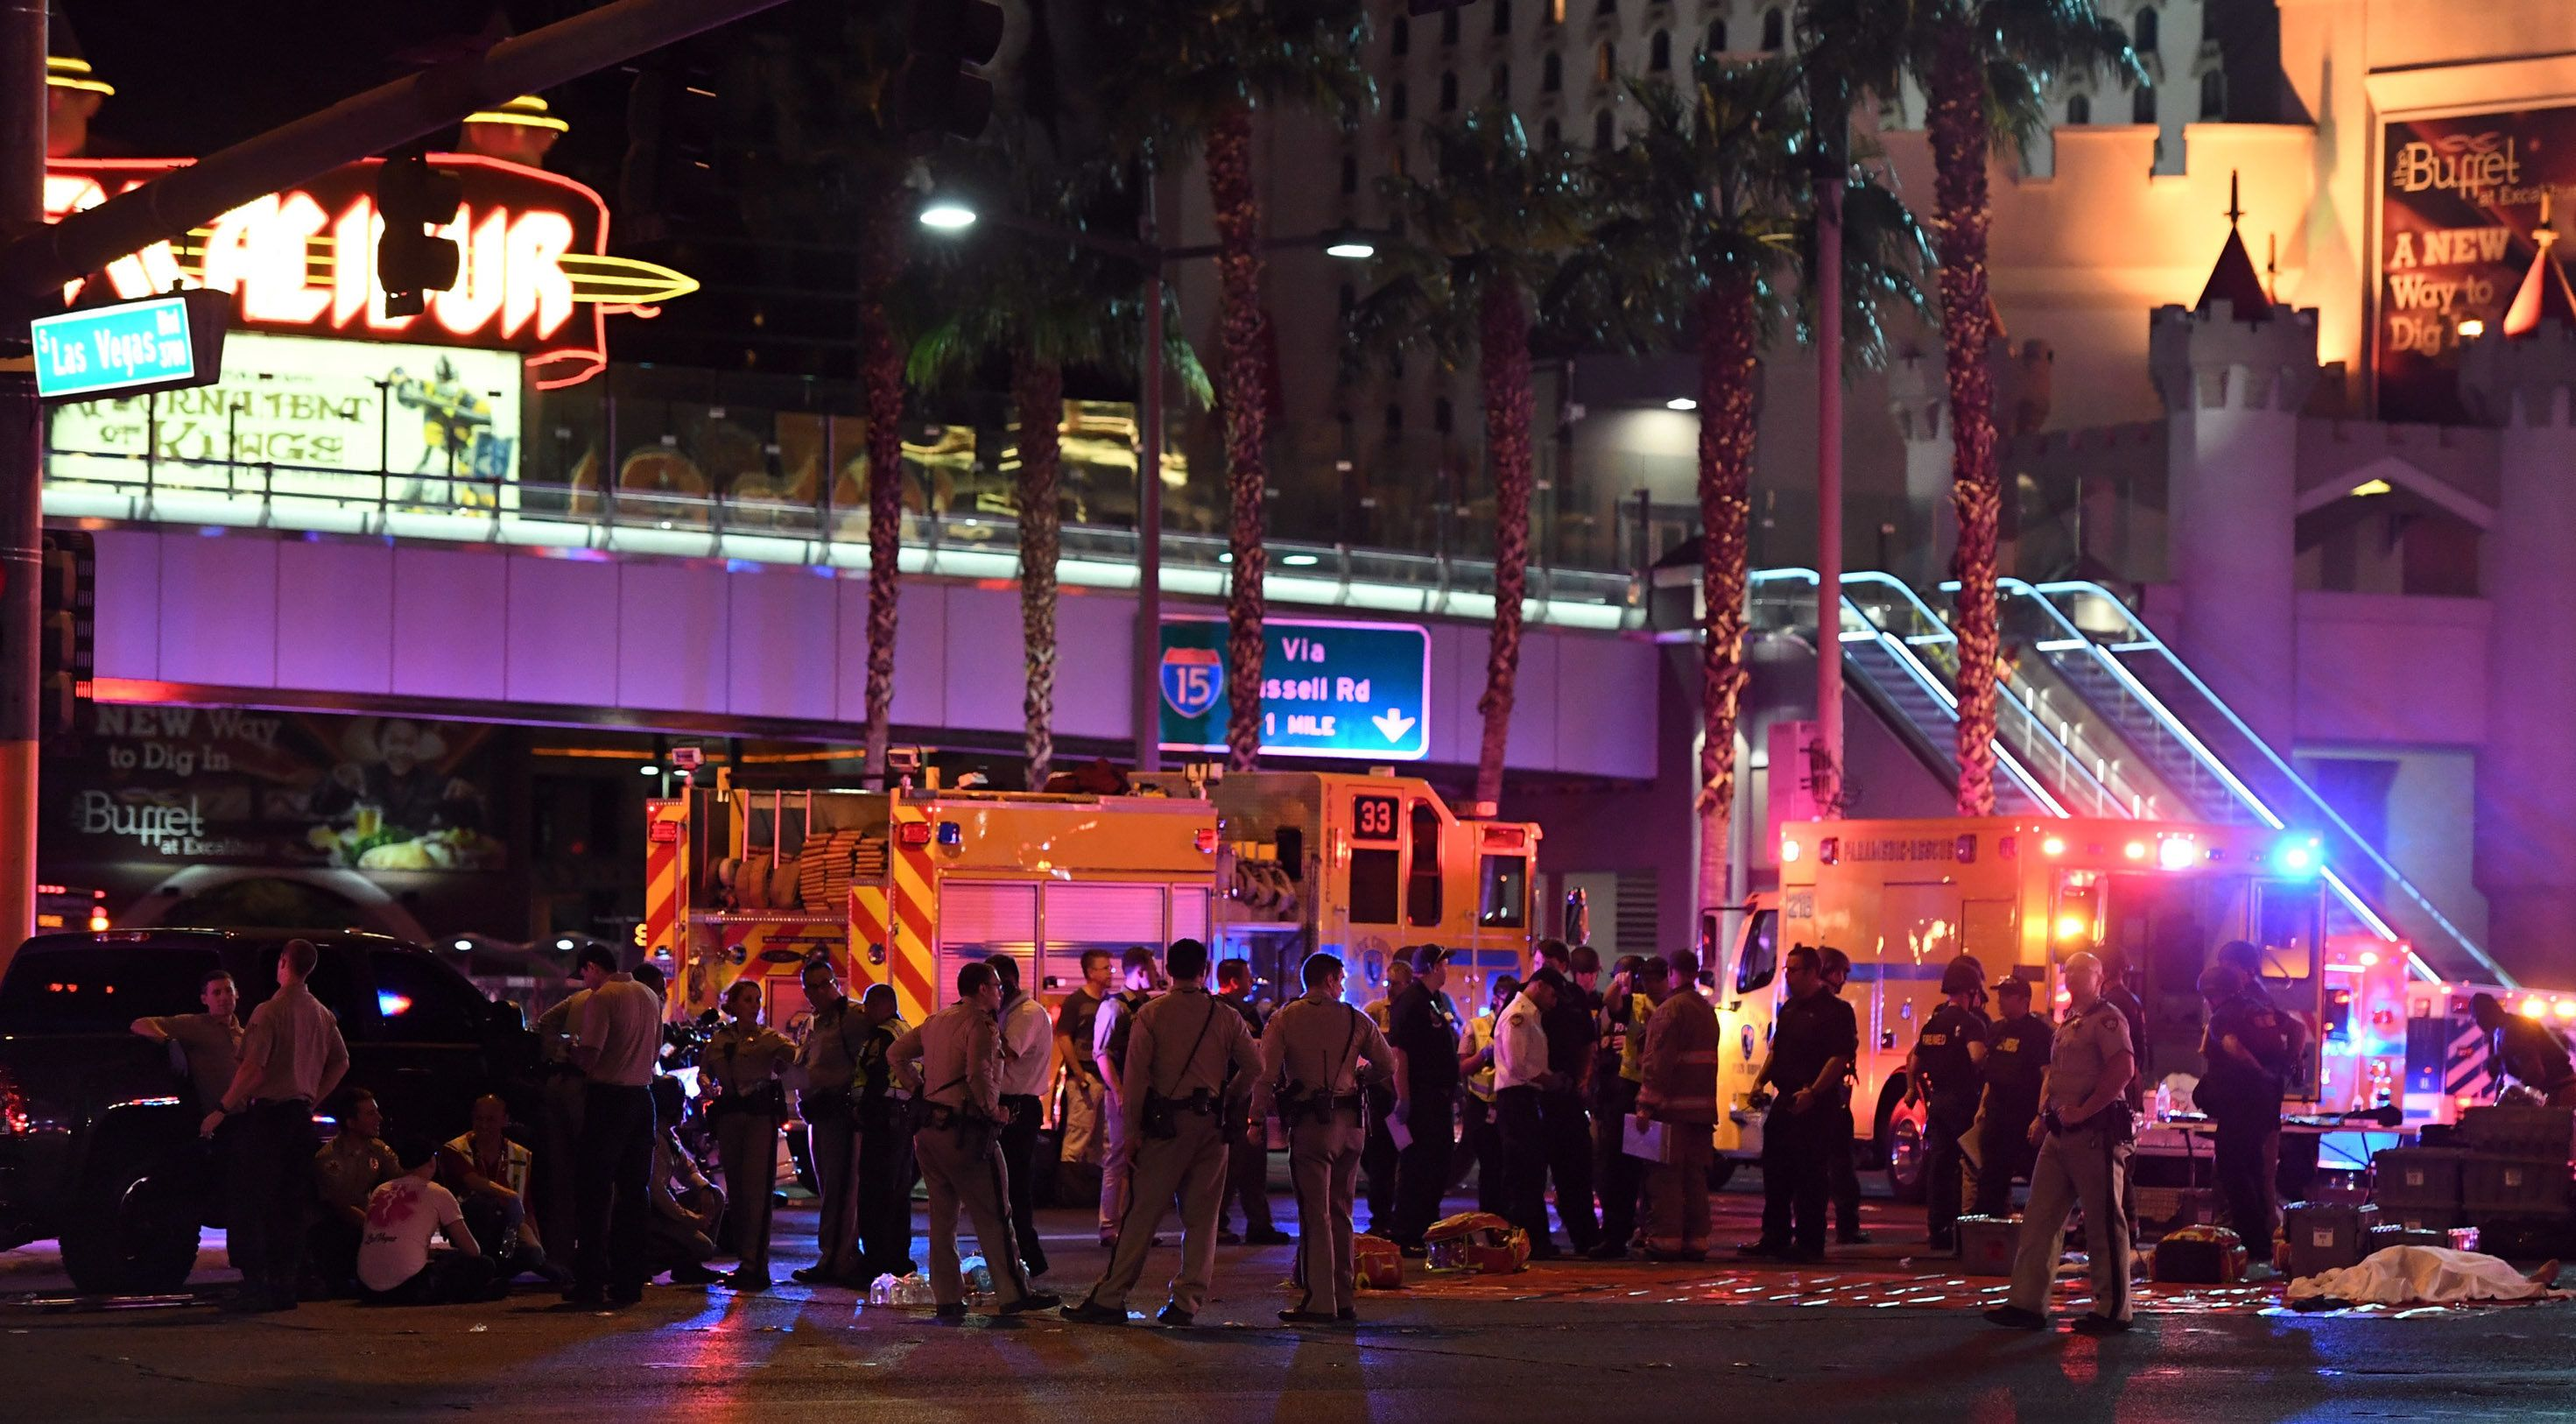 LAS VEGAS, NV - OCTOBER 01:  A body appears to lie under a sheet as police and rescue personnel gather at the intersection of Las Vegas Boulevard and Tropicana Ave on October 1, 2017 in Las Vegas, Nevada. A gunman has opened fire on a music festival in Las Vegas, leaving at least 2 people dead. Police have confirmed that one suspect has been shot. The investigation is ongoing. (Photo by Ethan Miller/Getty Images)